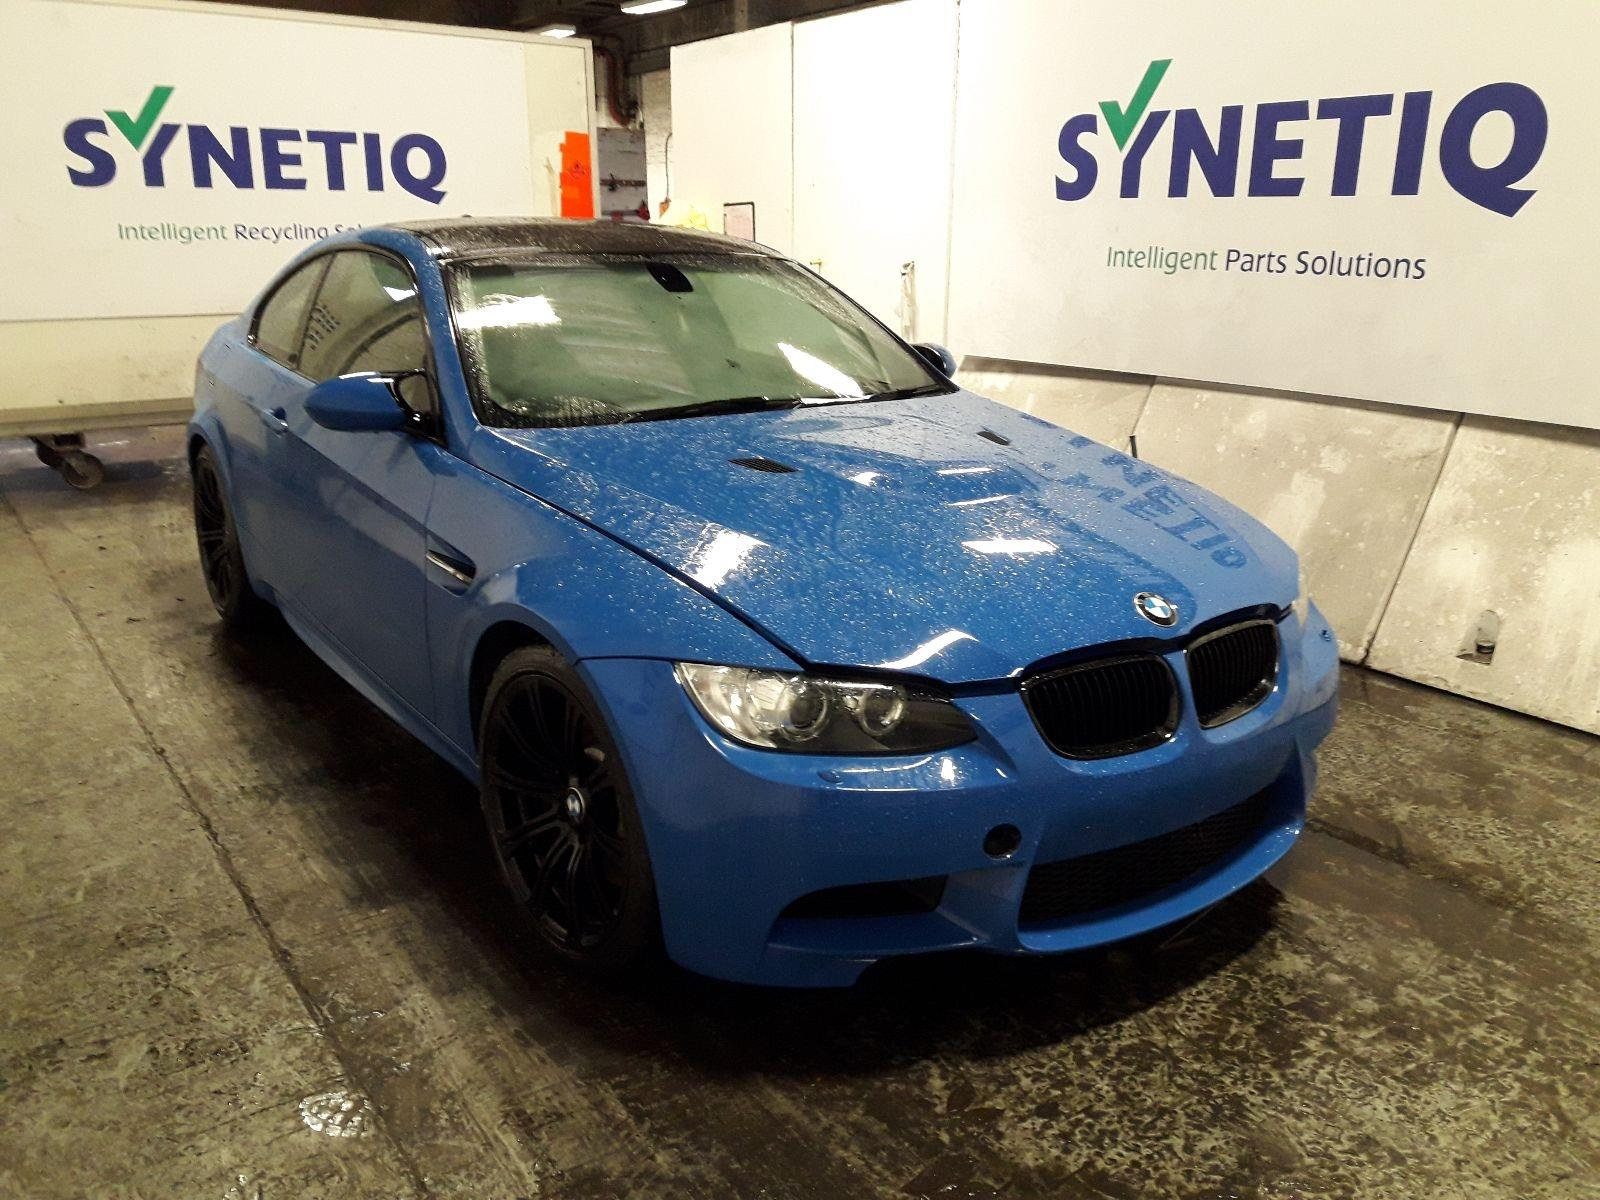 Synetiq 2013 Bmw 3 Series E92 2005 To 2013 M3 Limited Edition 500 2 Door Coupe Petrol Semi Auto Breaking For Used And Spare Parts